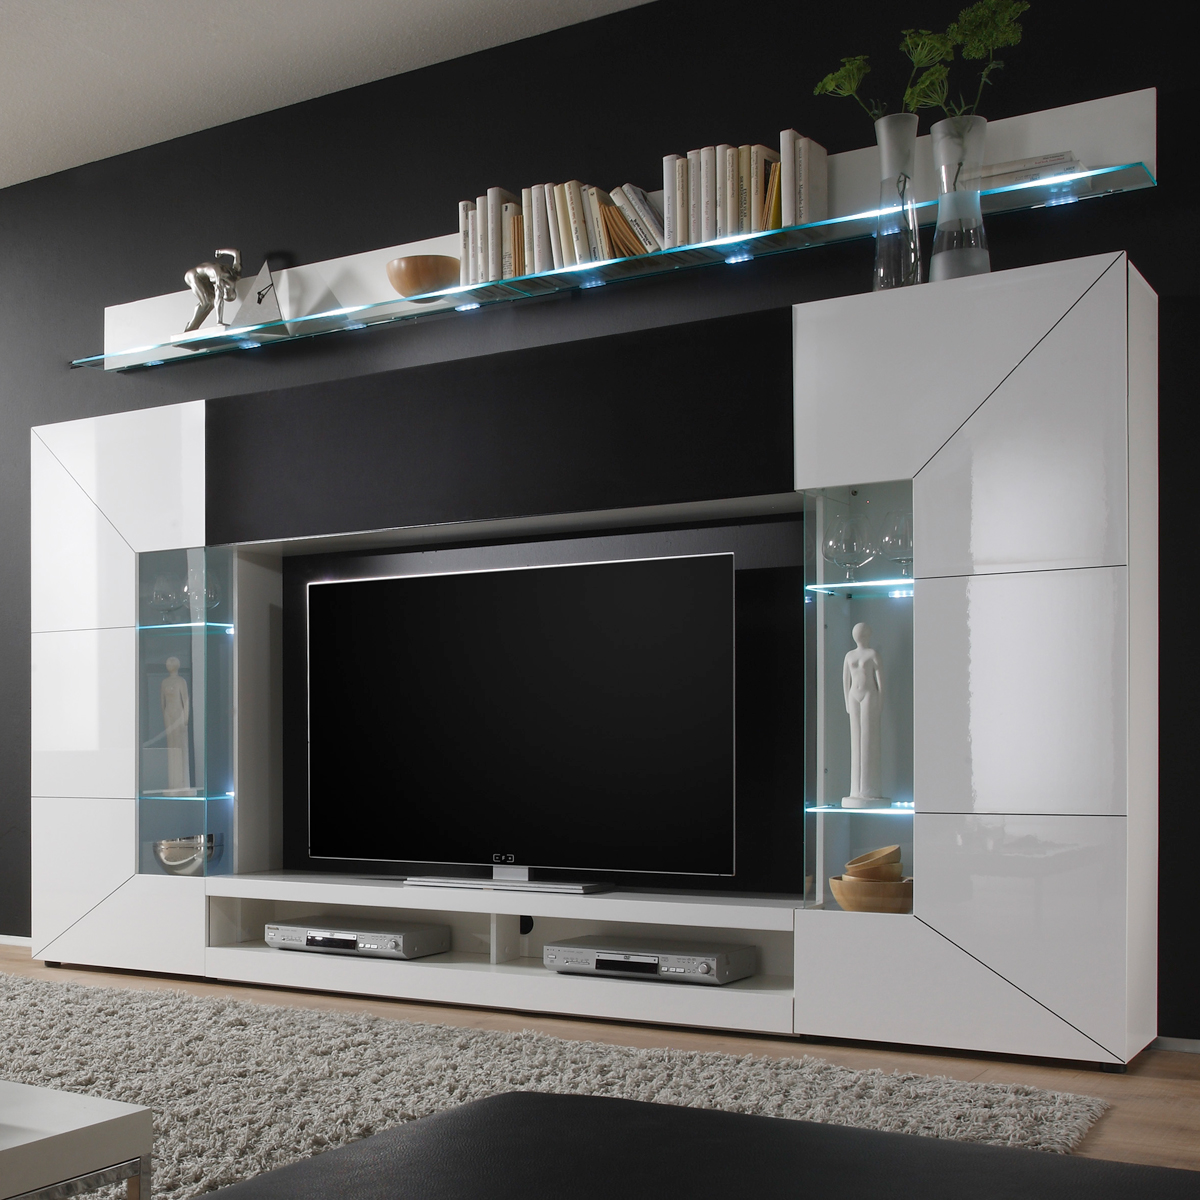 details zu media wand wohnwand tv wand wei hochglanz neu. Black Bedroom Furniture Sets. Home Design Ideas